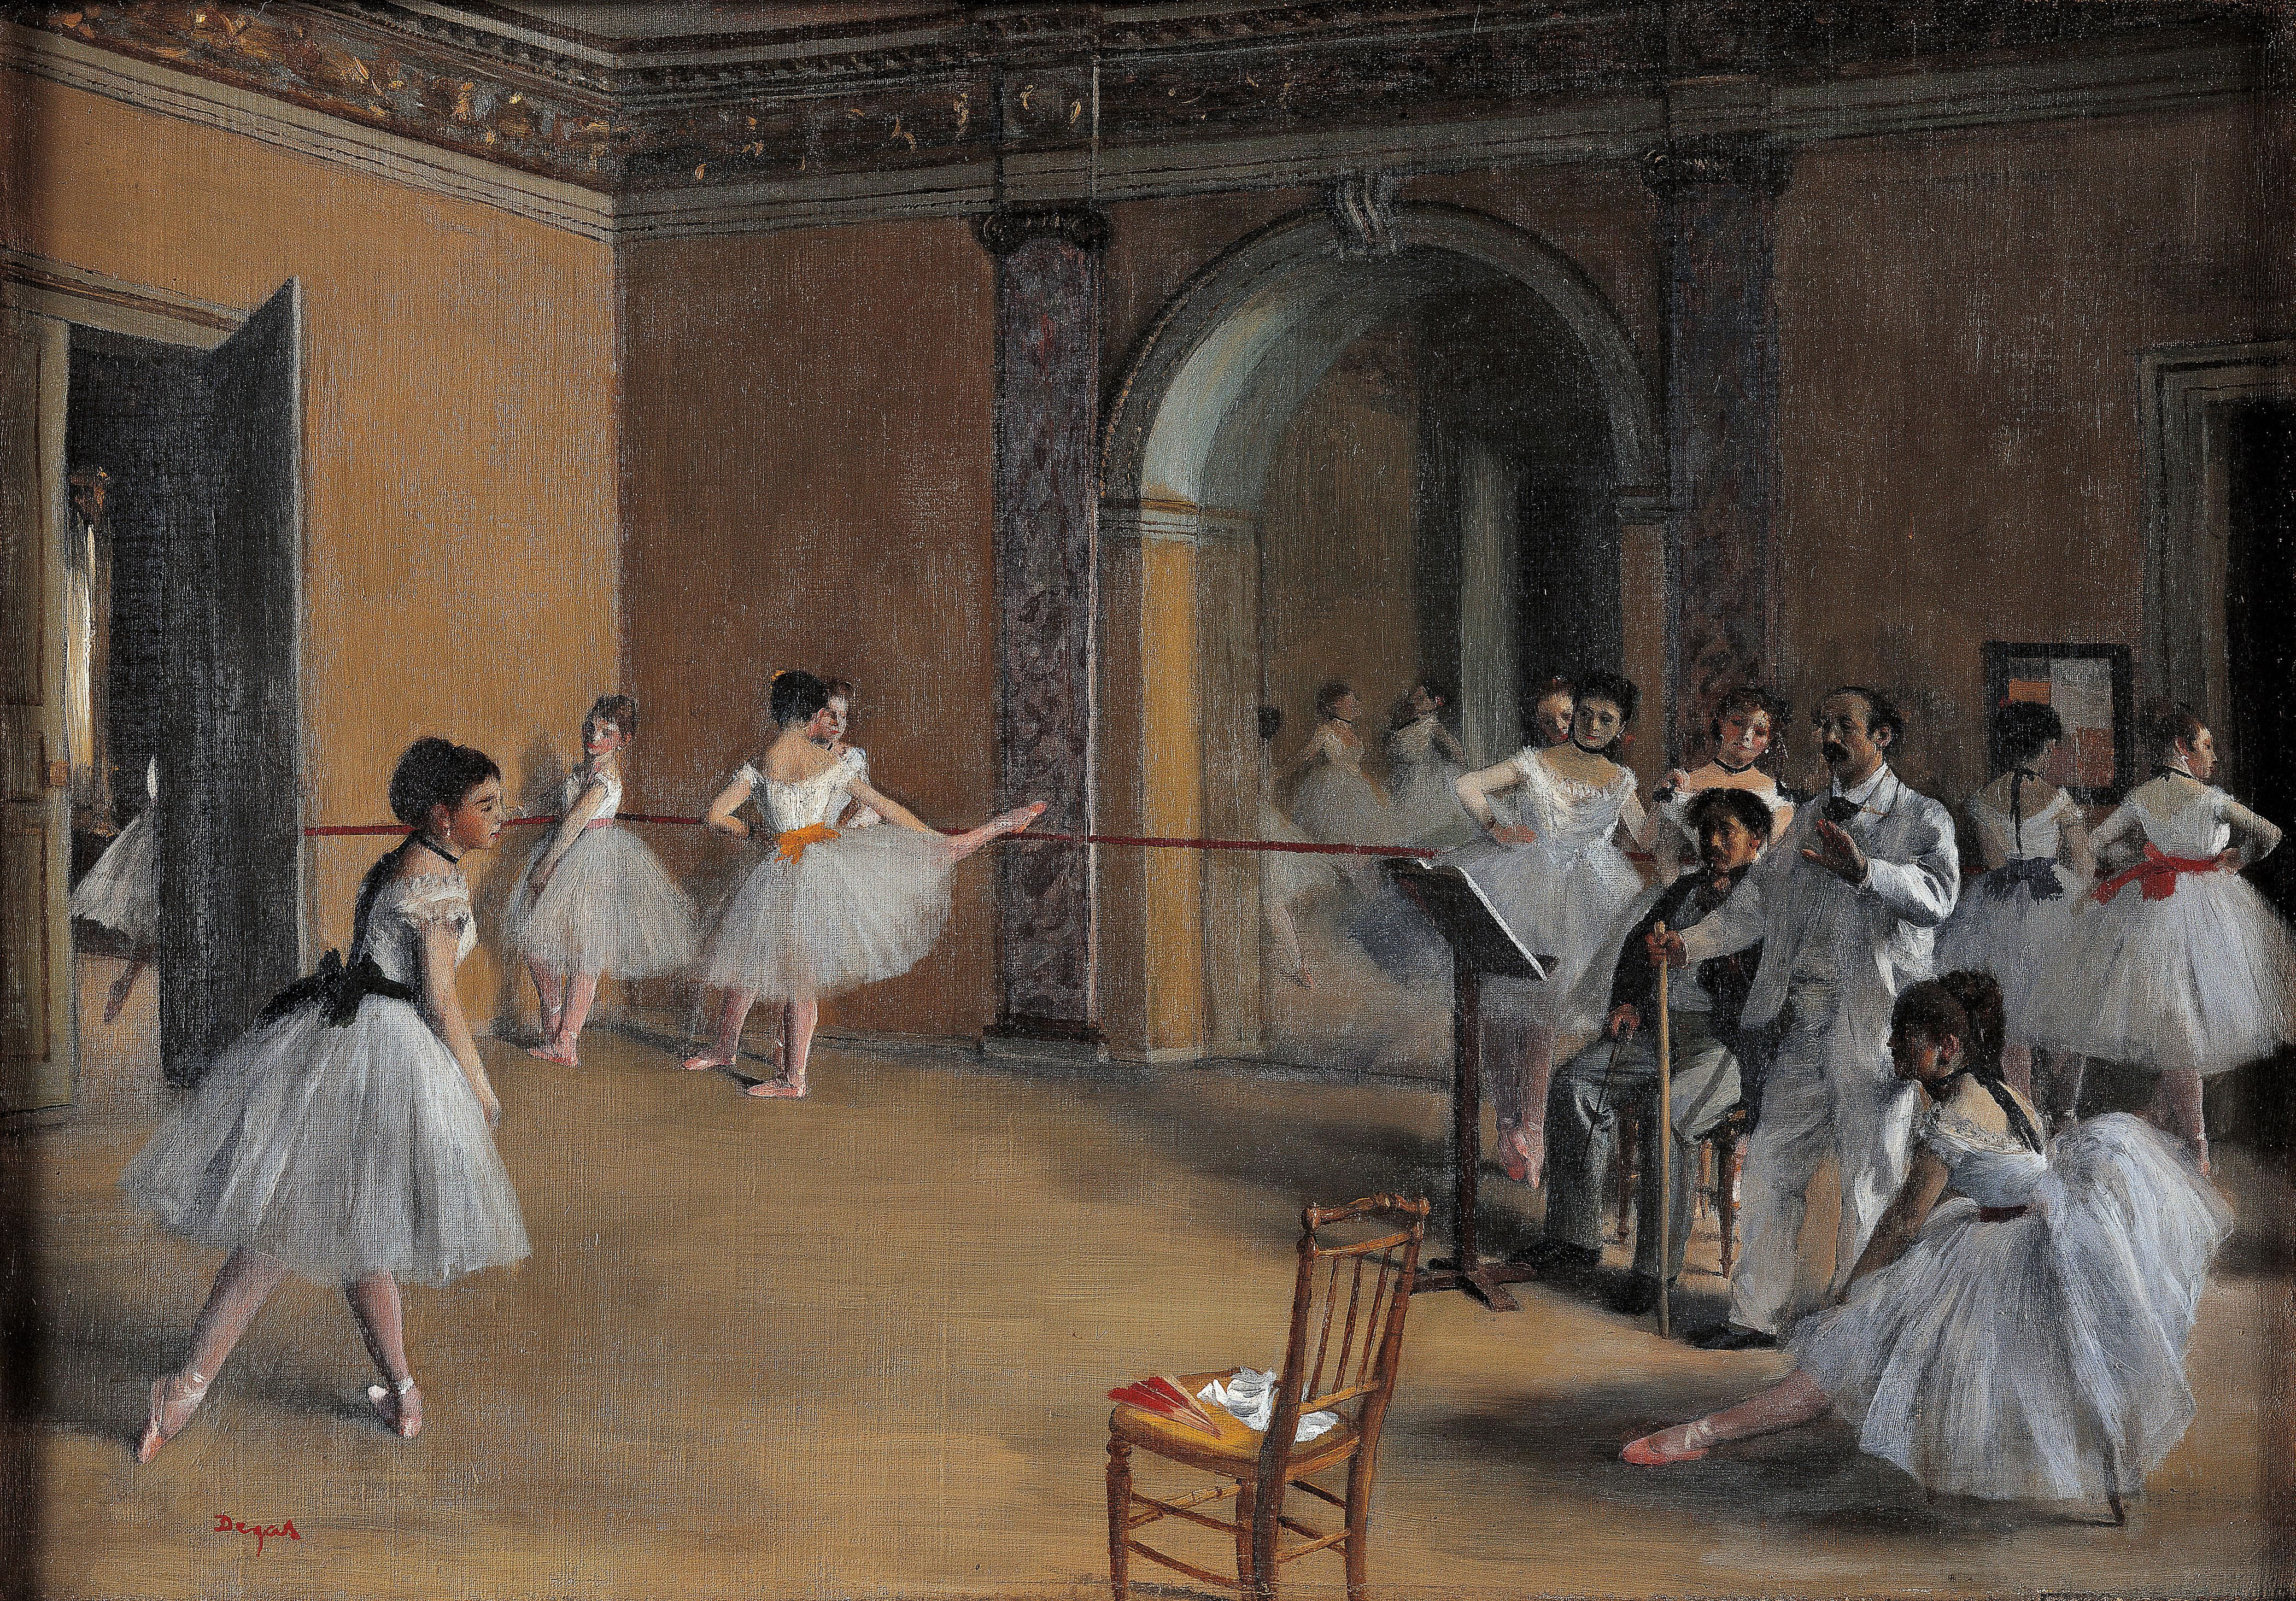 essay dance class edgar degas Edgar degas based most of his paintings on dance and nudity of women even though edgar degas is referred to as an impressionist, he considers himself a realist even though his works fits both the categories1.